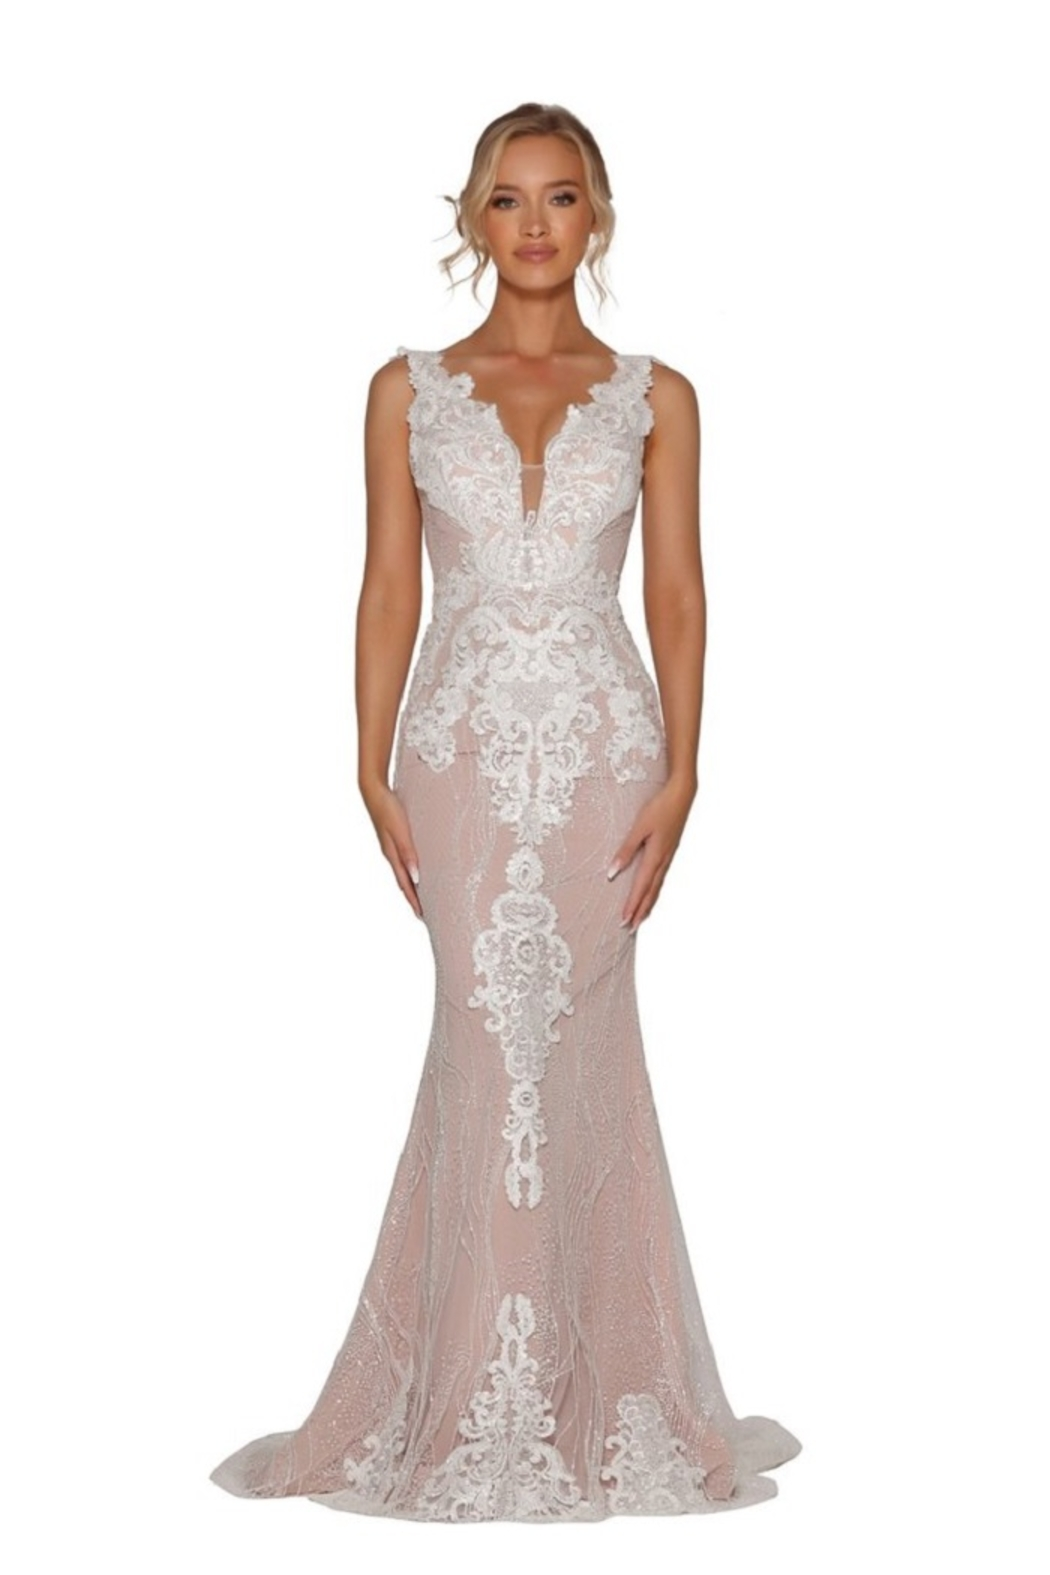 PORTIA AND SCARLETT Ivory & Nude Glitter Lace Bridal Gown With Detachable Train - Back Cropped Image